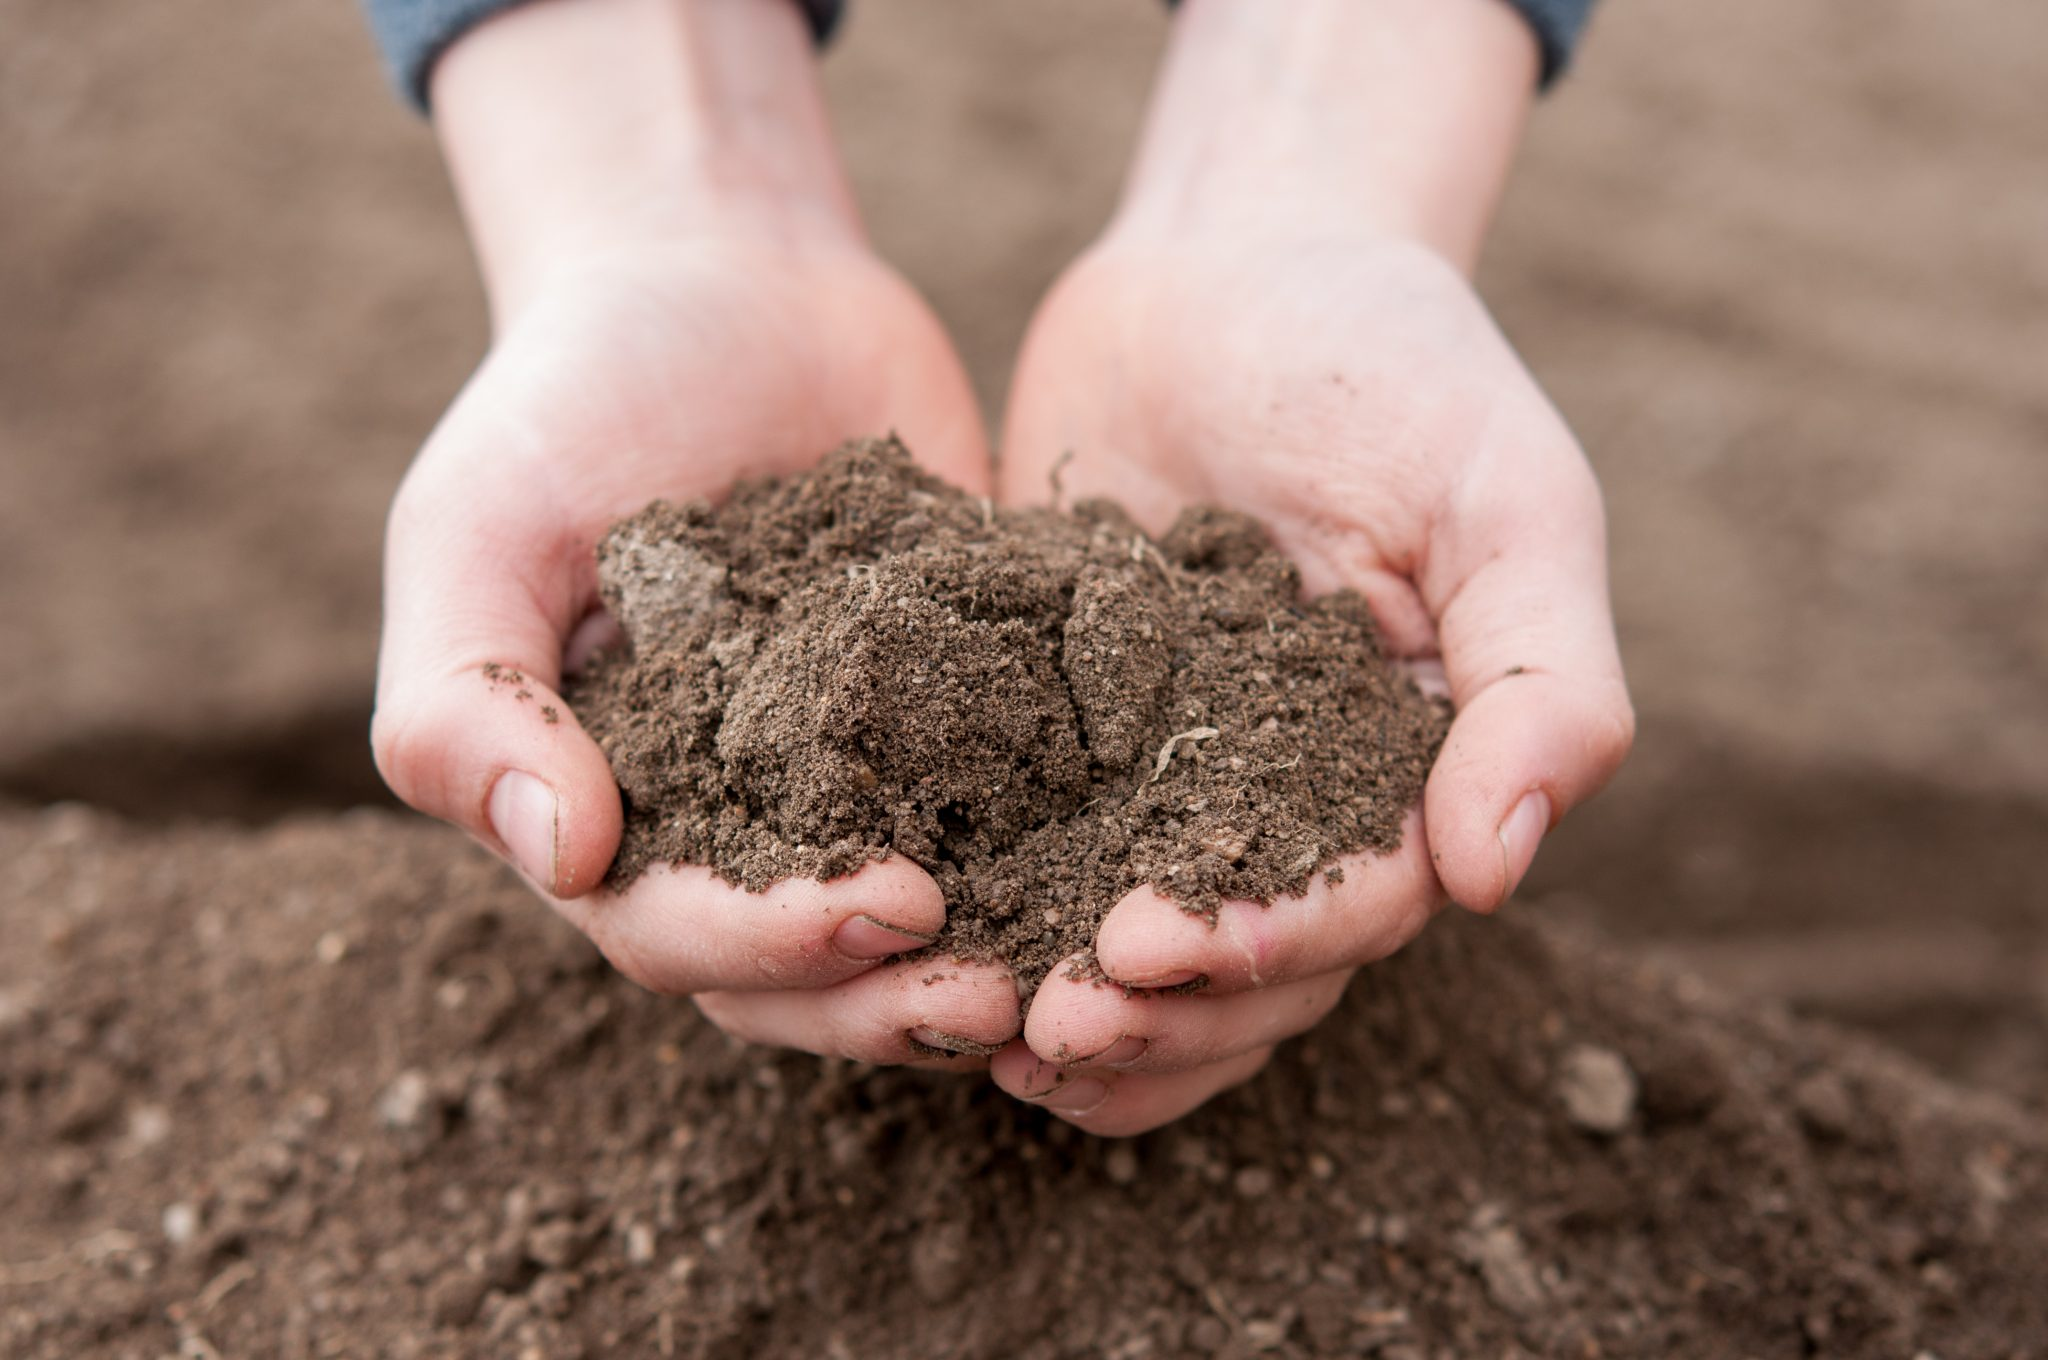 Soil in child's hands - dirty and dry